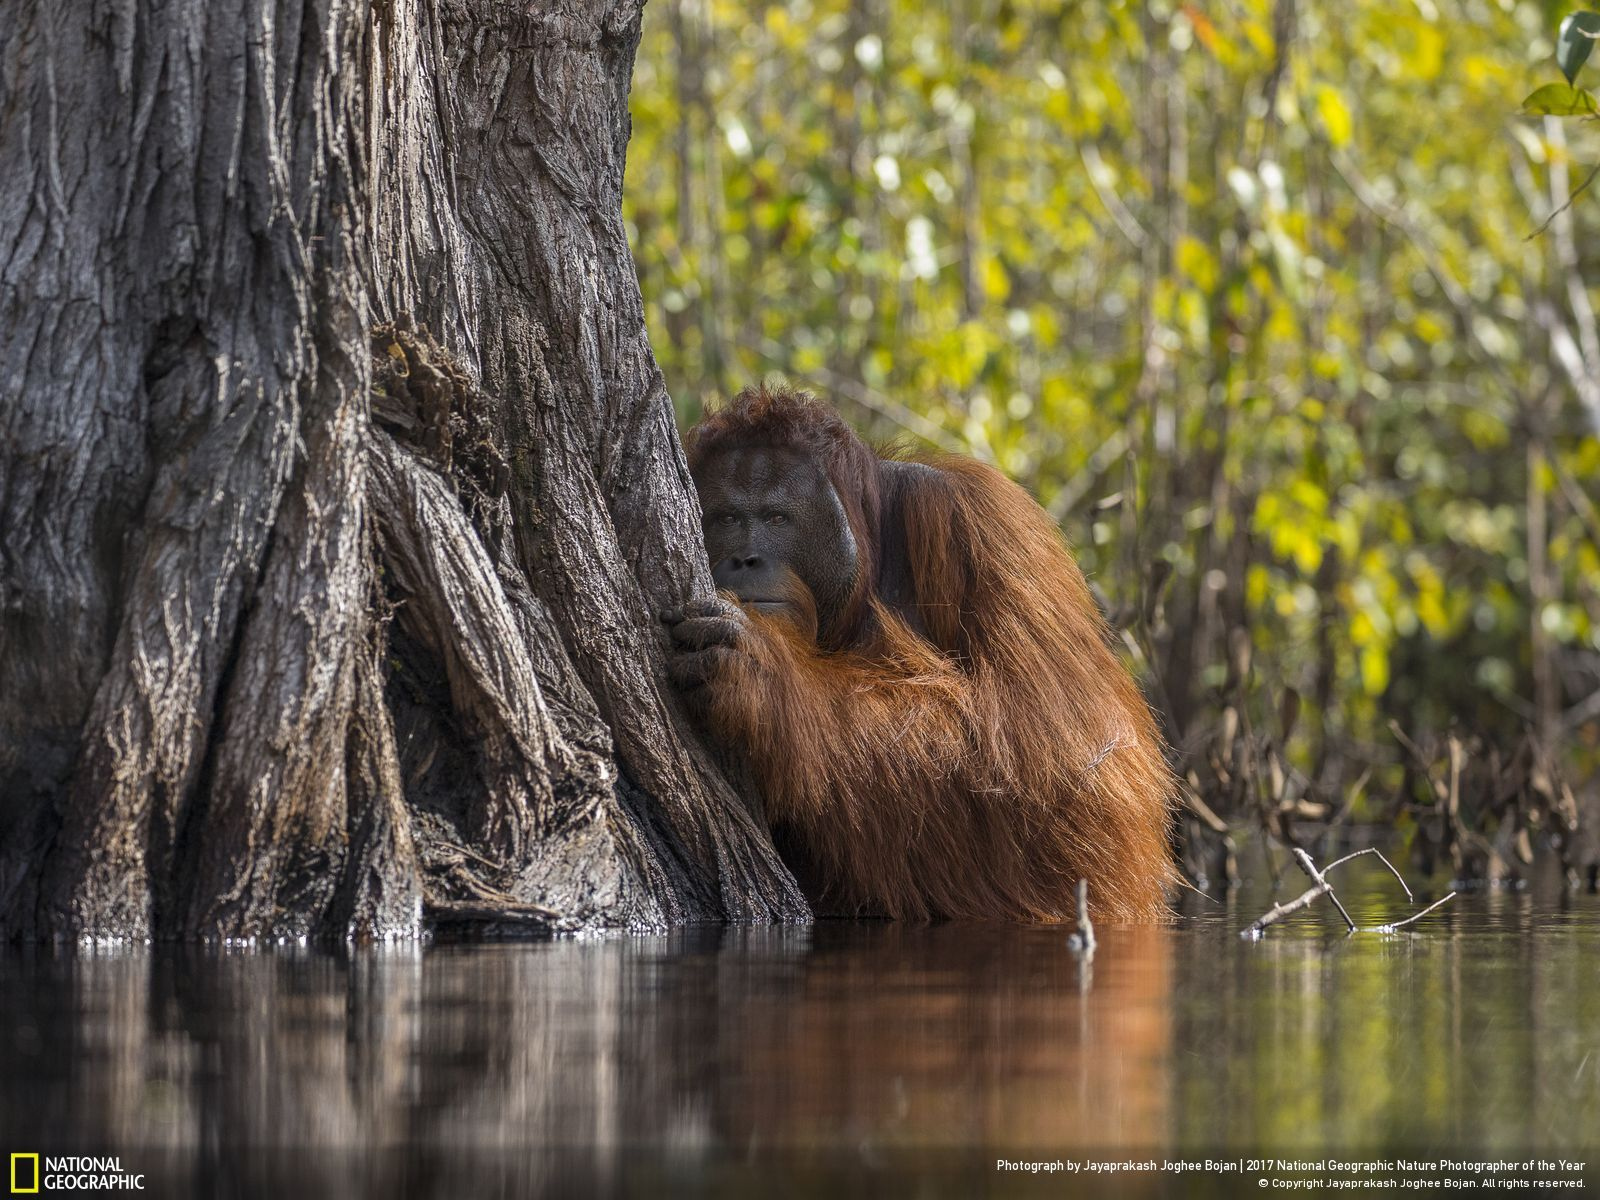 National Geographic GRAND PRIZE wildlife 2017